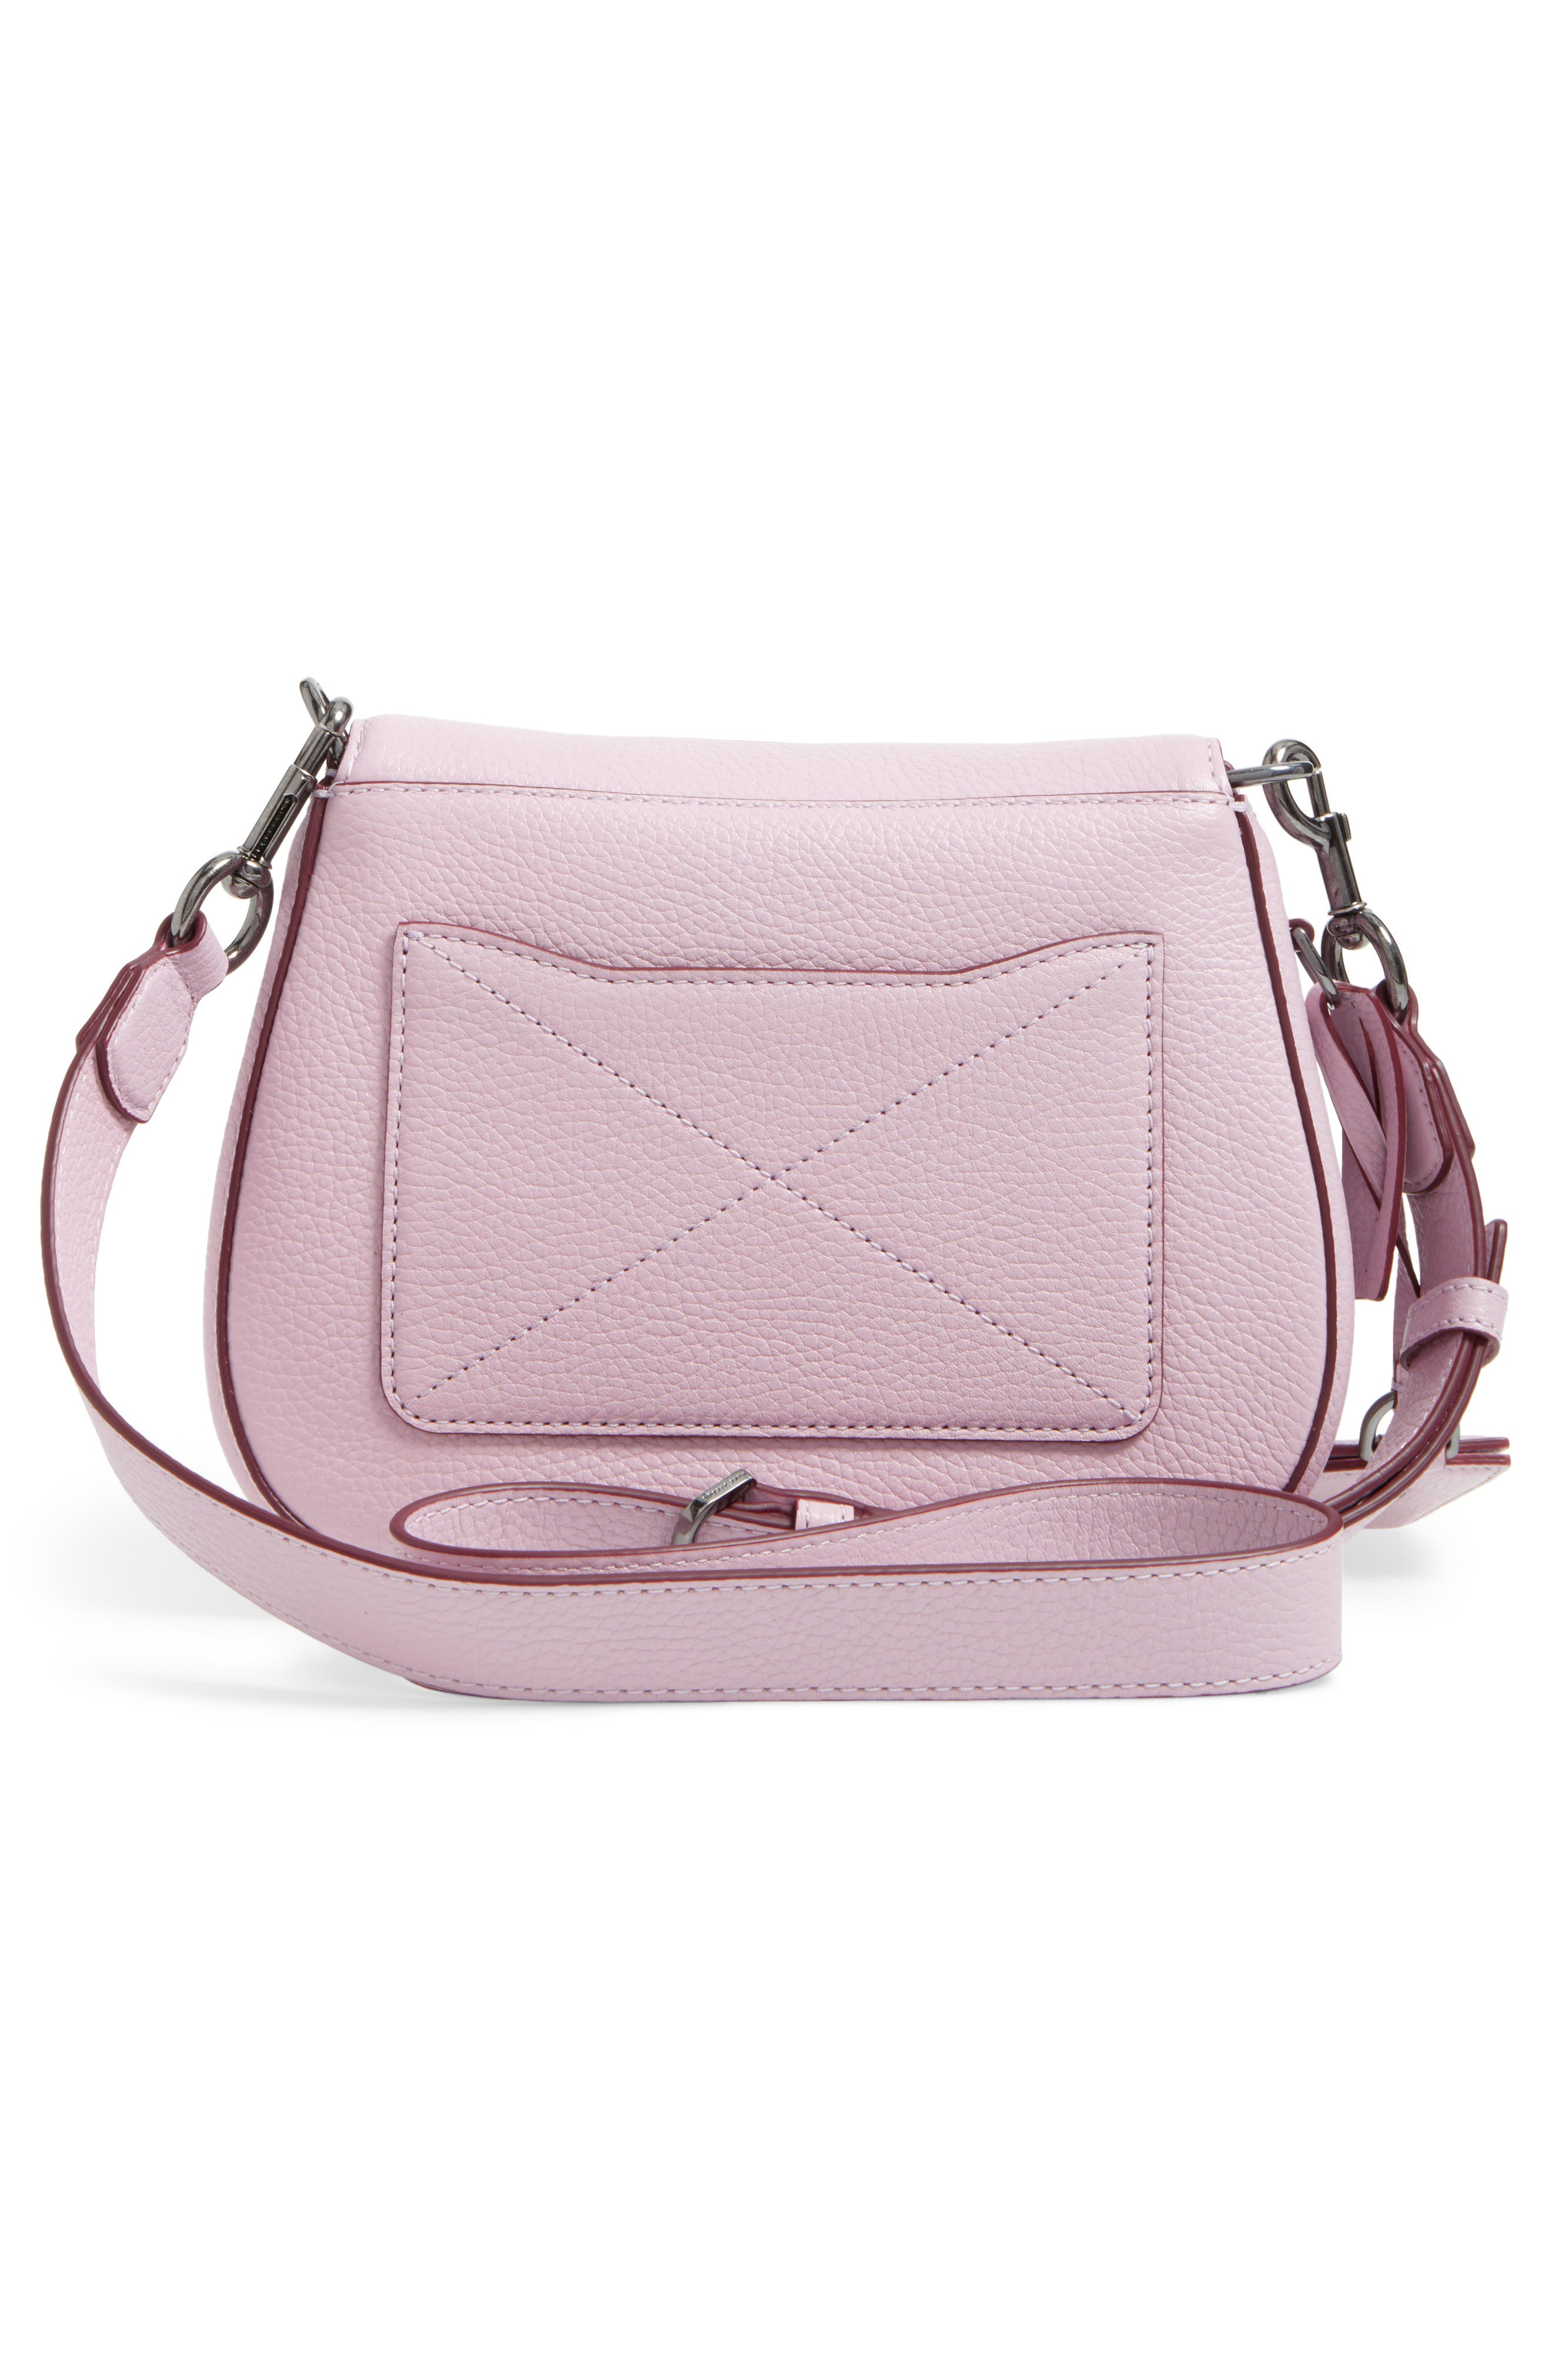 Small Recruit Nomad Pebbled Leather Crossbody Bag,                             Alternate thumbnail 39, color,